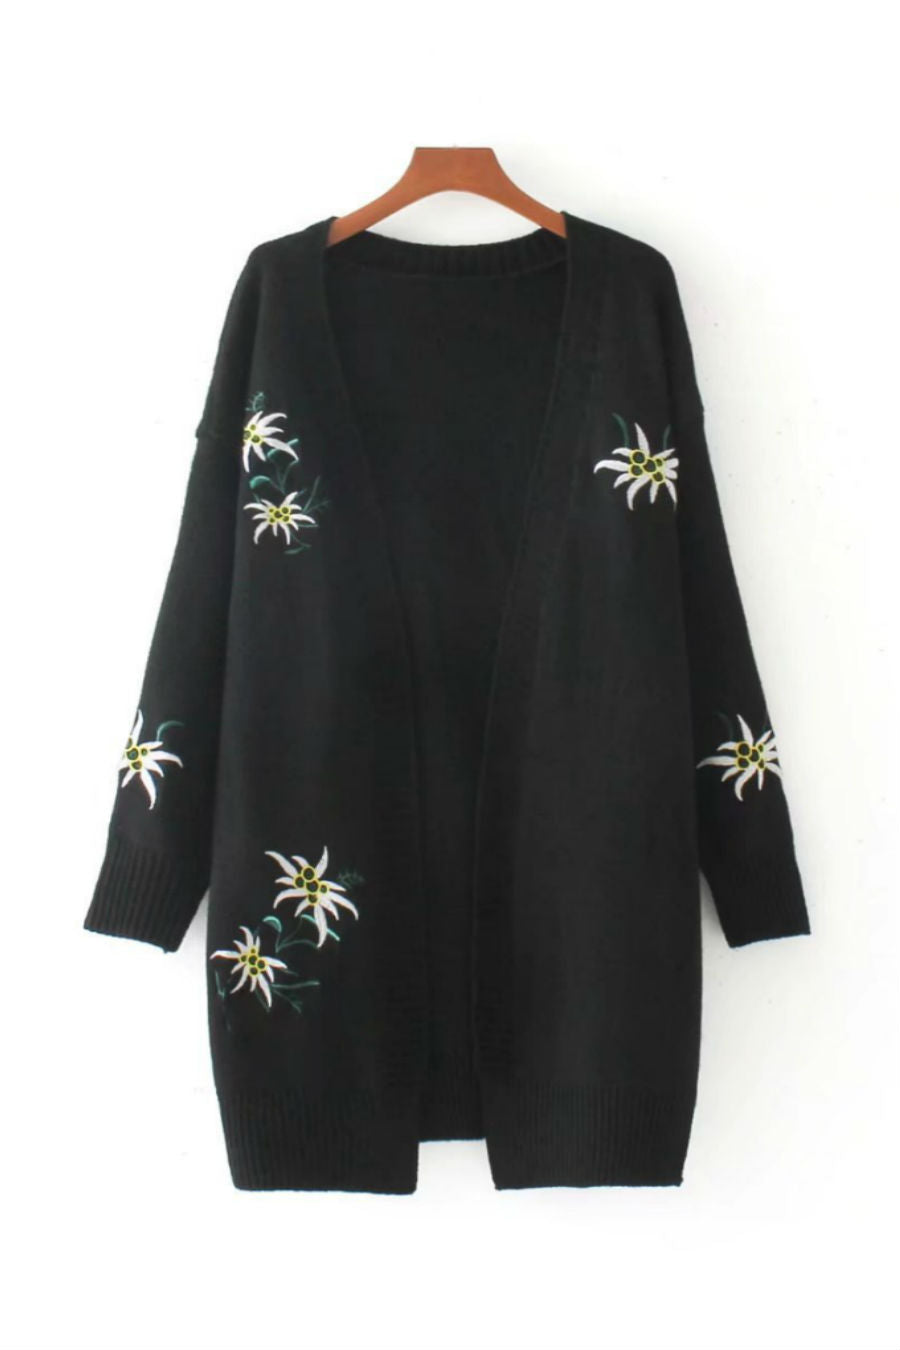 Black Floral Embroidery Cardigan